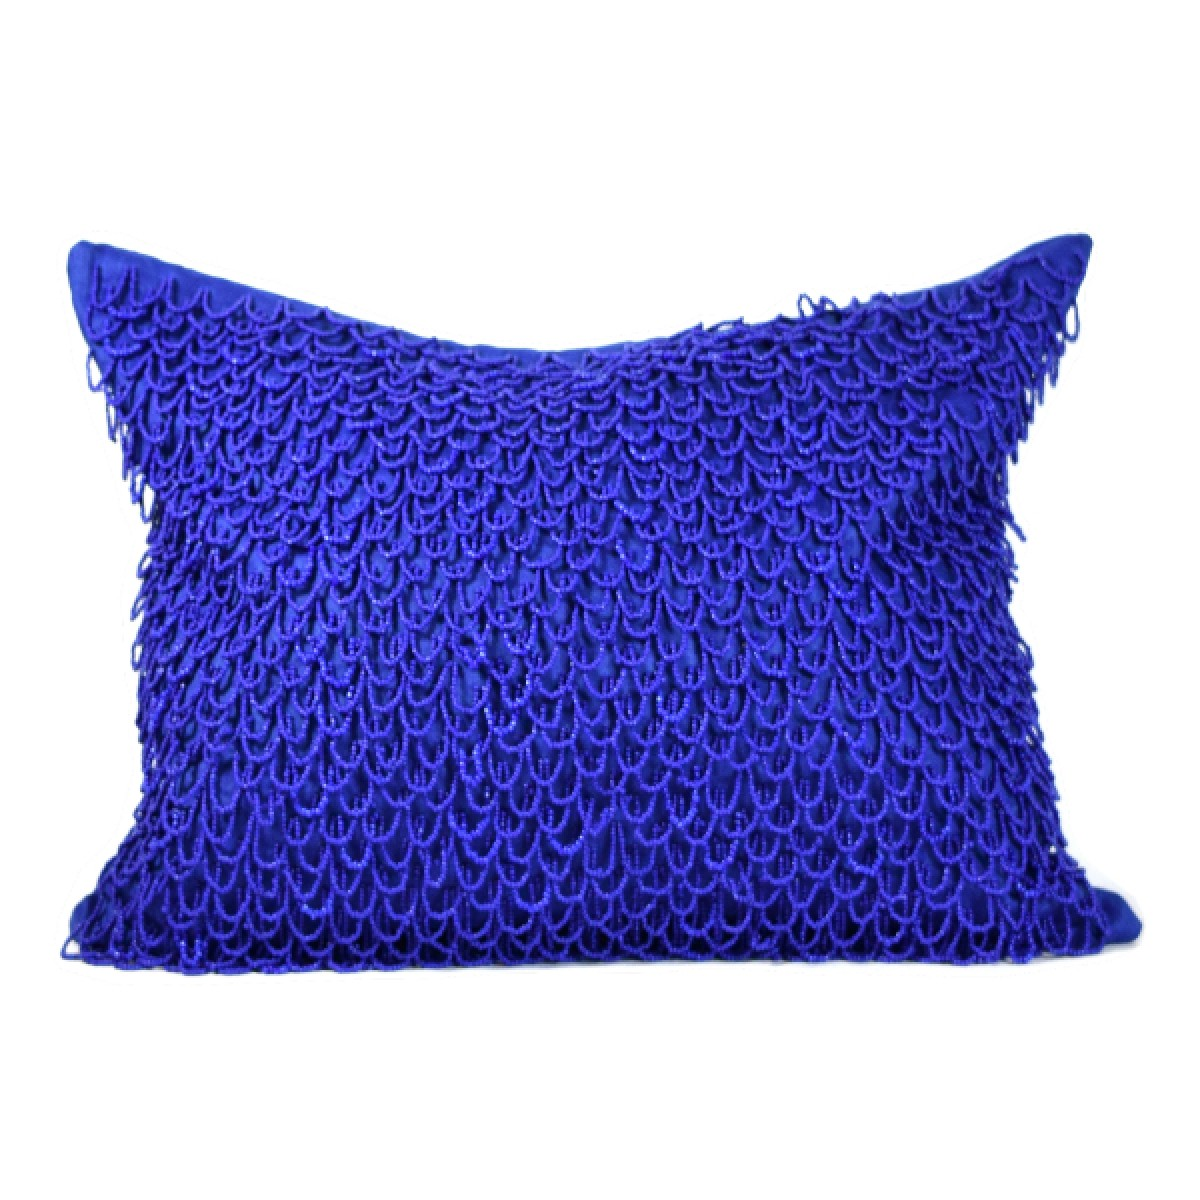 dazzling blue crazy loops linen throw pillow by debage inc set of 2